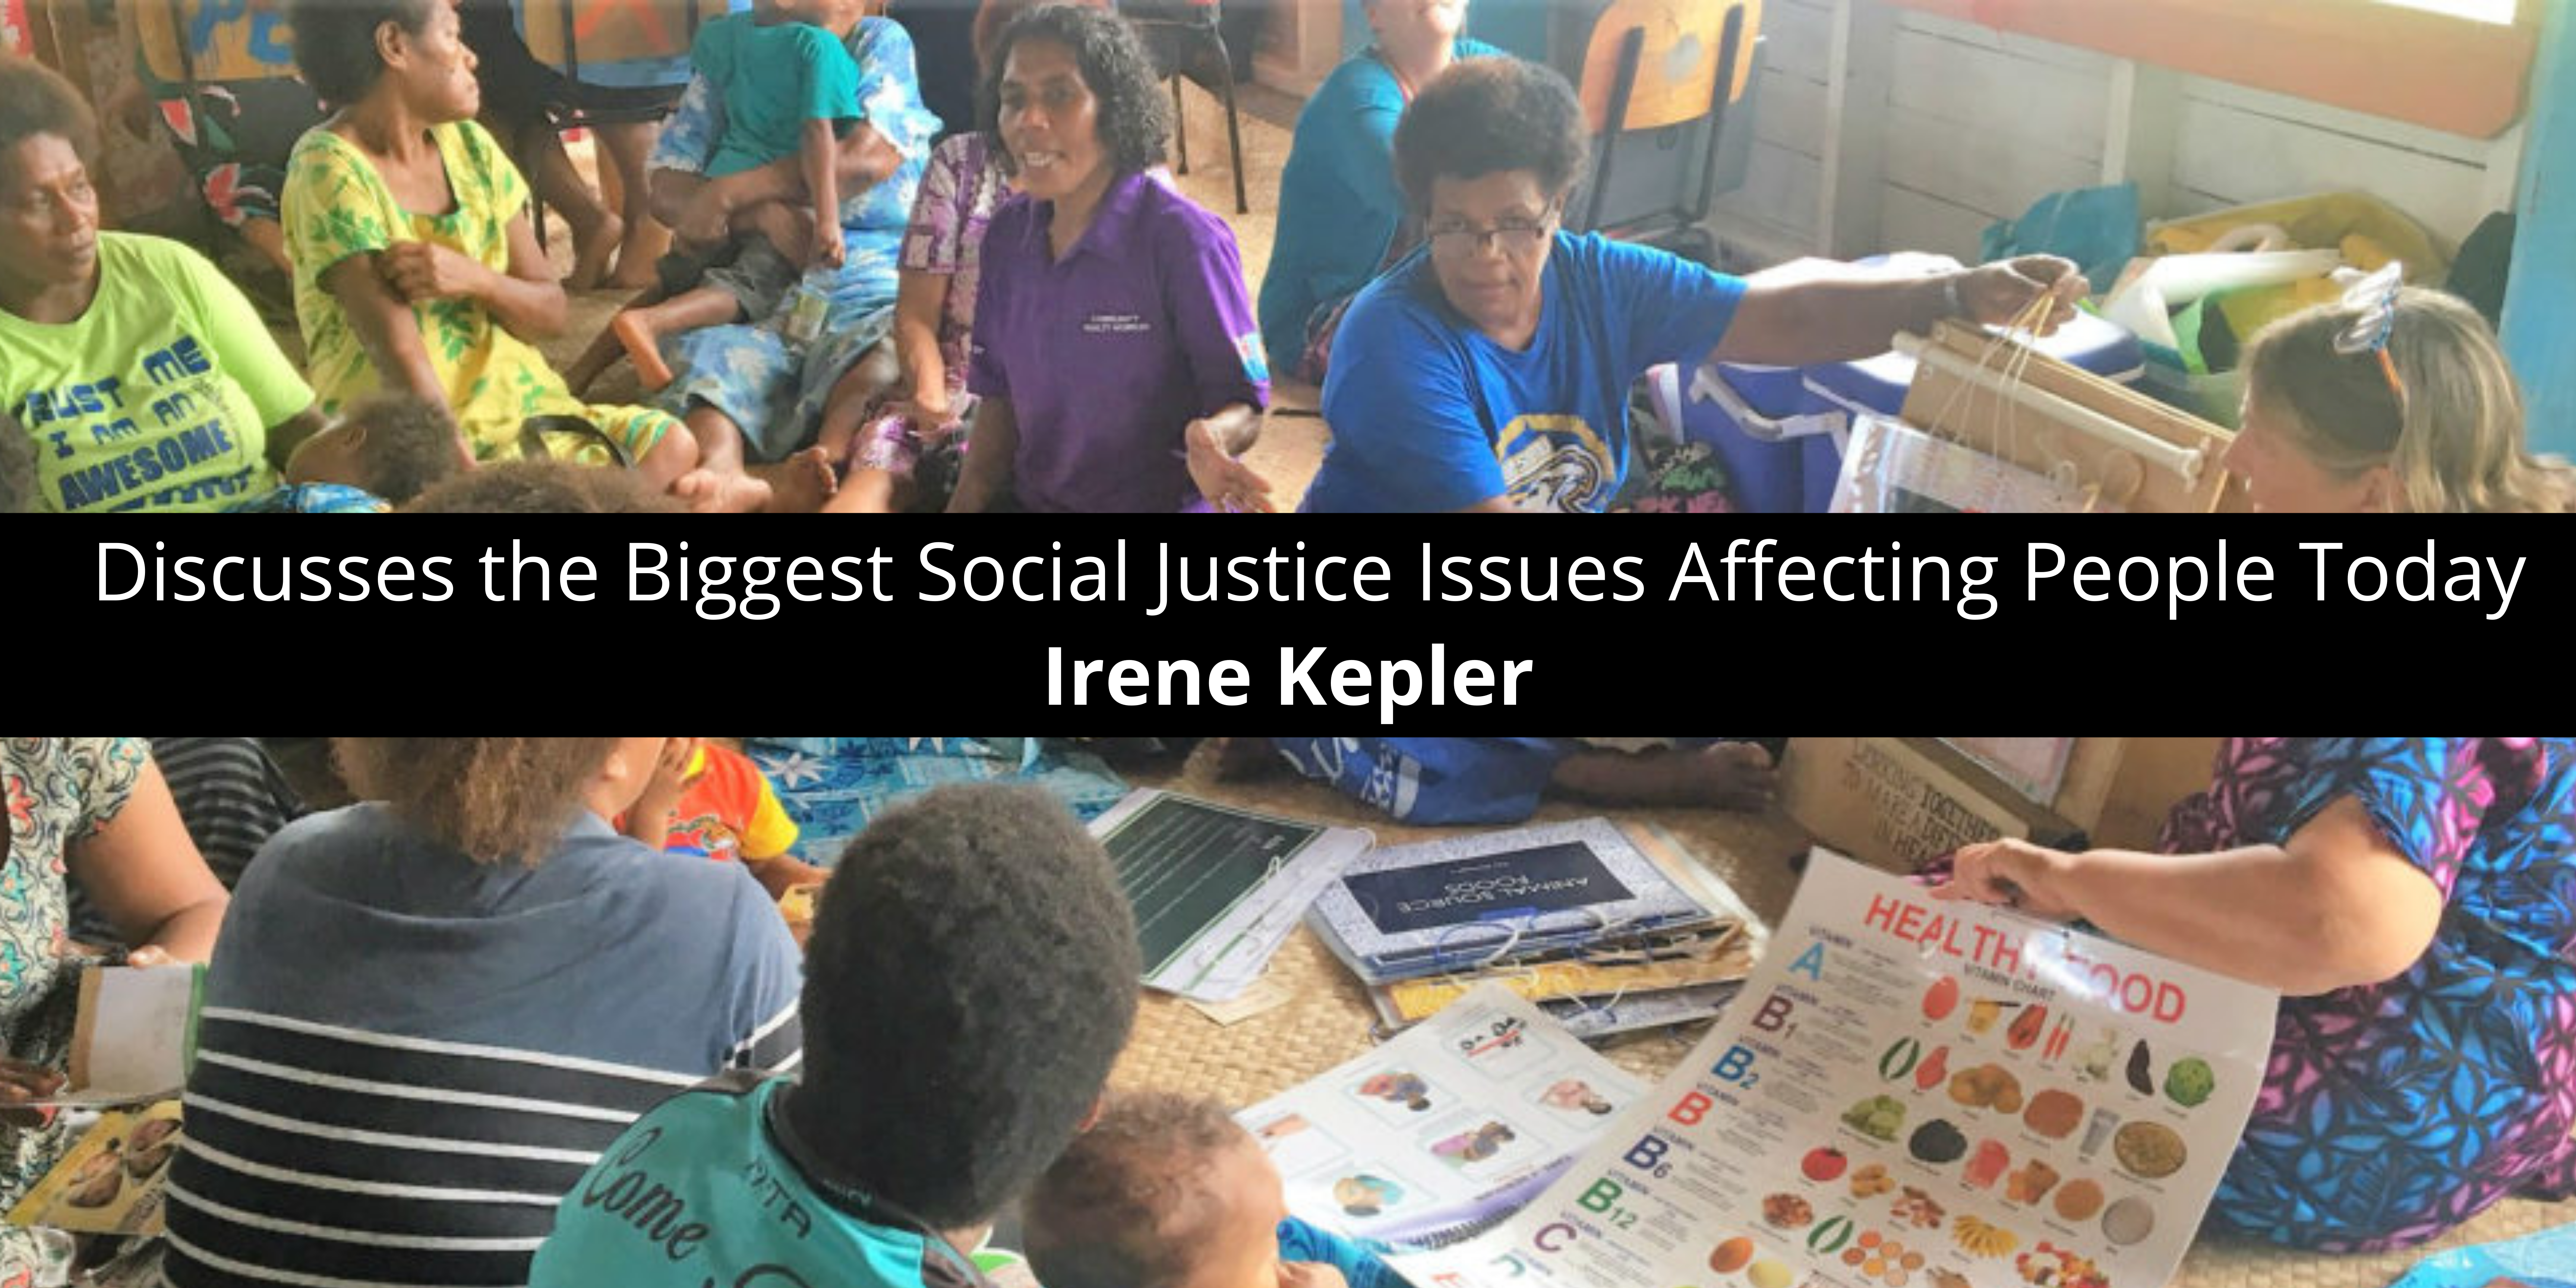 Irene Kepler Discusses the Biggest Social Justice Issues Affecting People